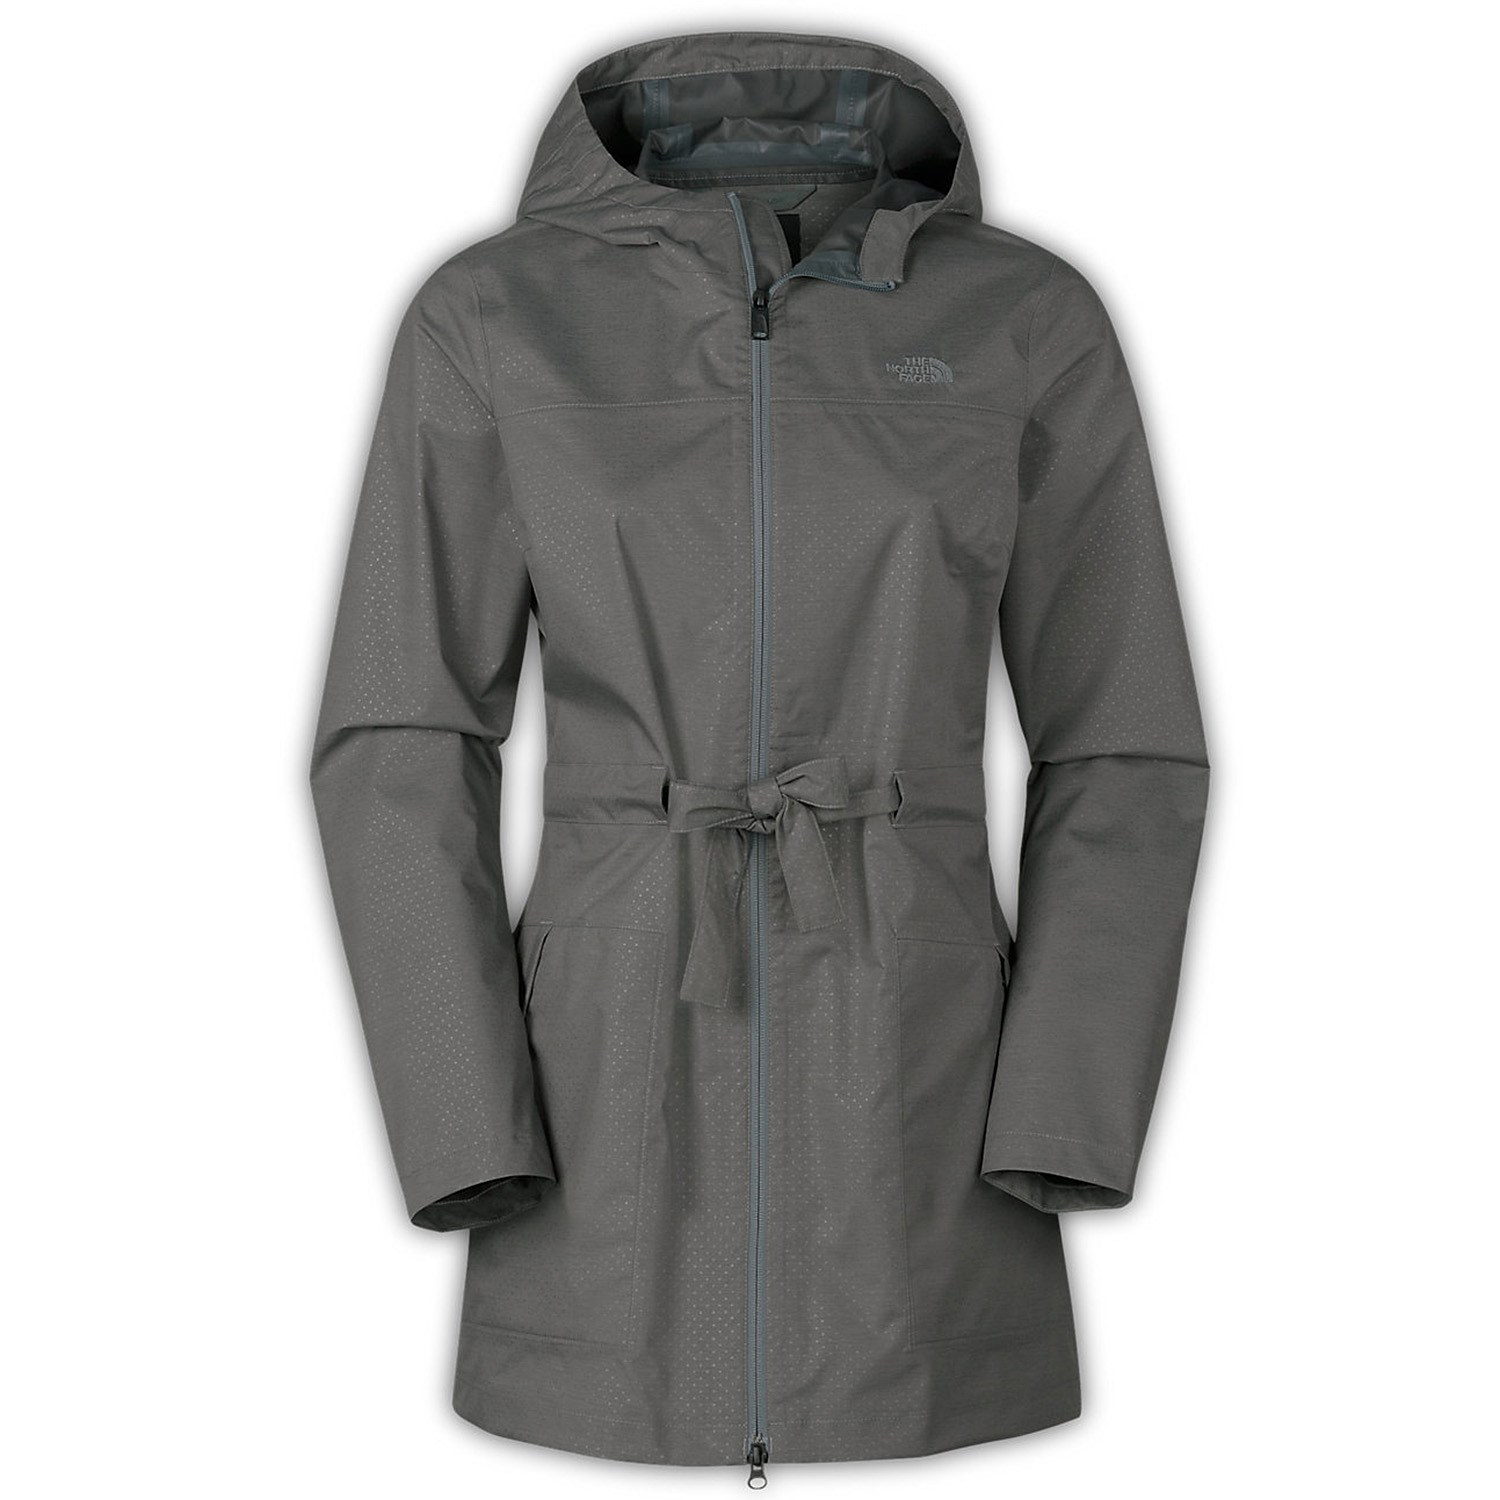 925ca9f2e The North Face Teralinda Trench Jacket - Women's | evo